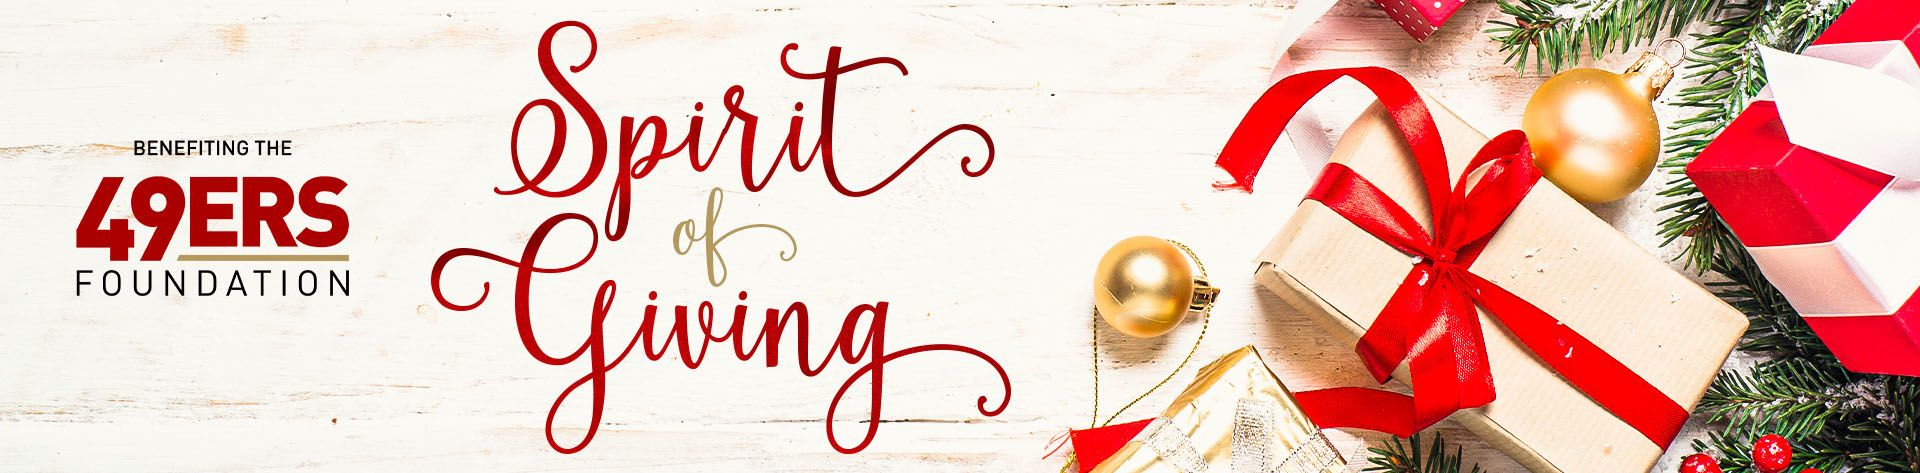 SpiritofGiving-Spirit of Giving Header